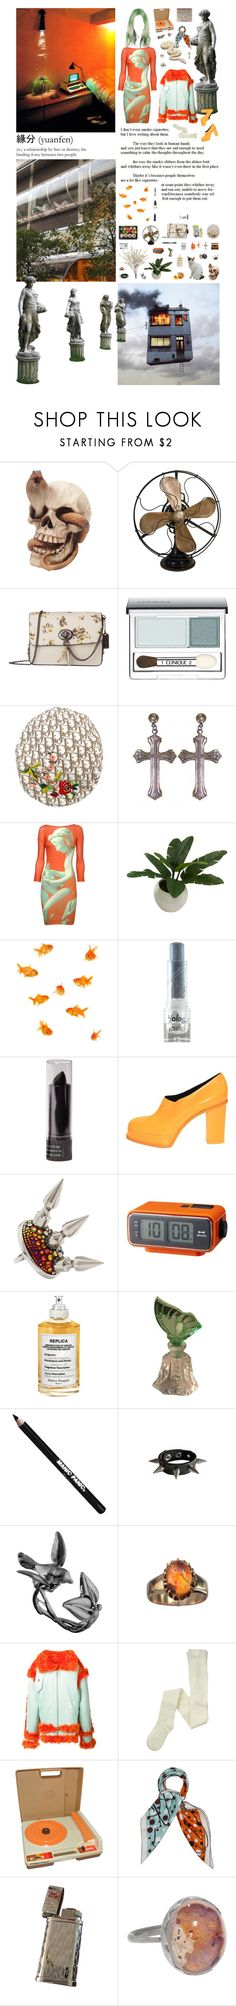 """My strange memories: you can fly to Japan in all the realities, but you will never forget the smell of my cigarettes by your fireplace"" by nothingisnormal ❤ liked on Polyvore featuring Louis Vuitton, INC International Concepts, Coach, Clinique, Christian Dior, Yves Saint Laurent, Just Cavalli, Threshold, Forever 21 and Anna Sui"